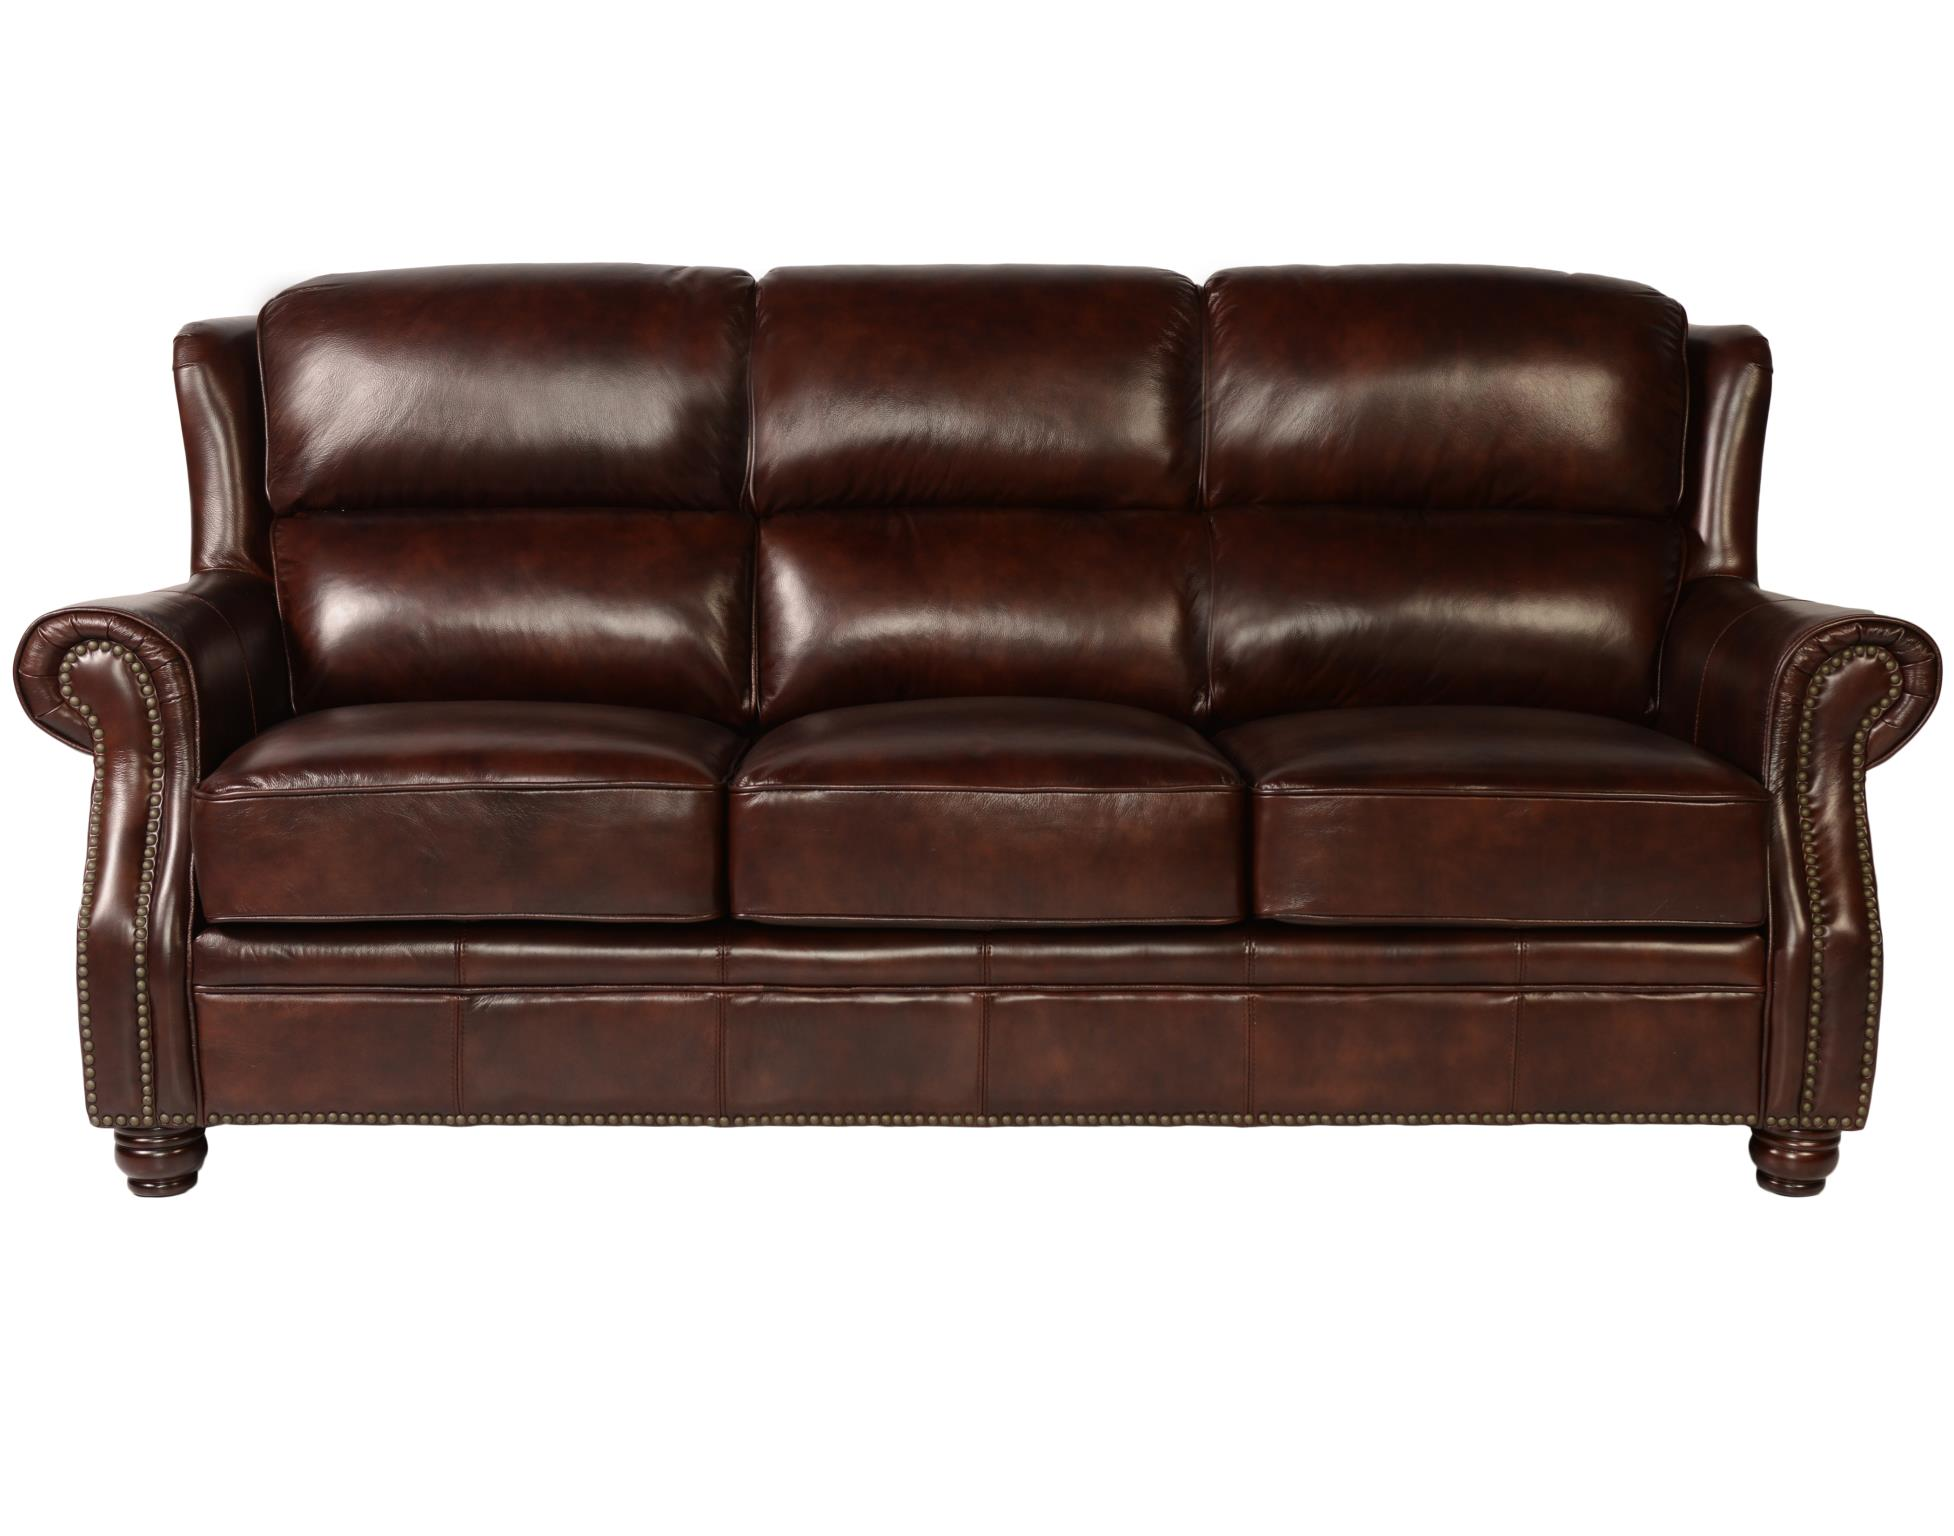 Oakwood 1418 Leather Sofa In Rustic Savauge   IN STOCK FAST FREE DELIVERY.  By Lazzaro